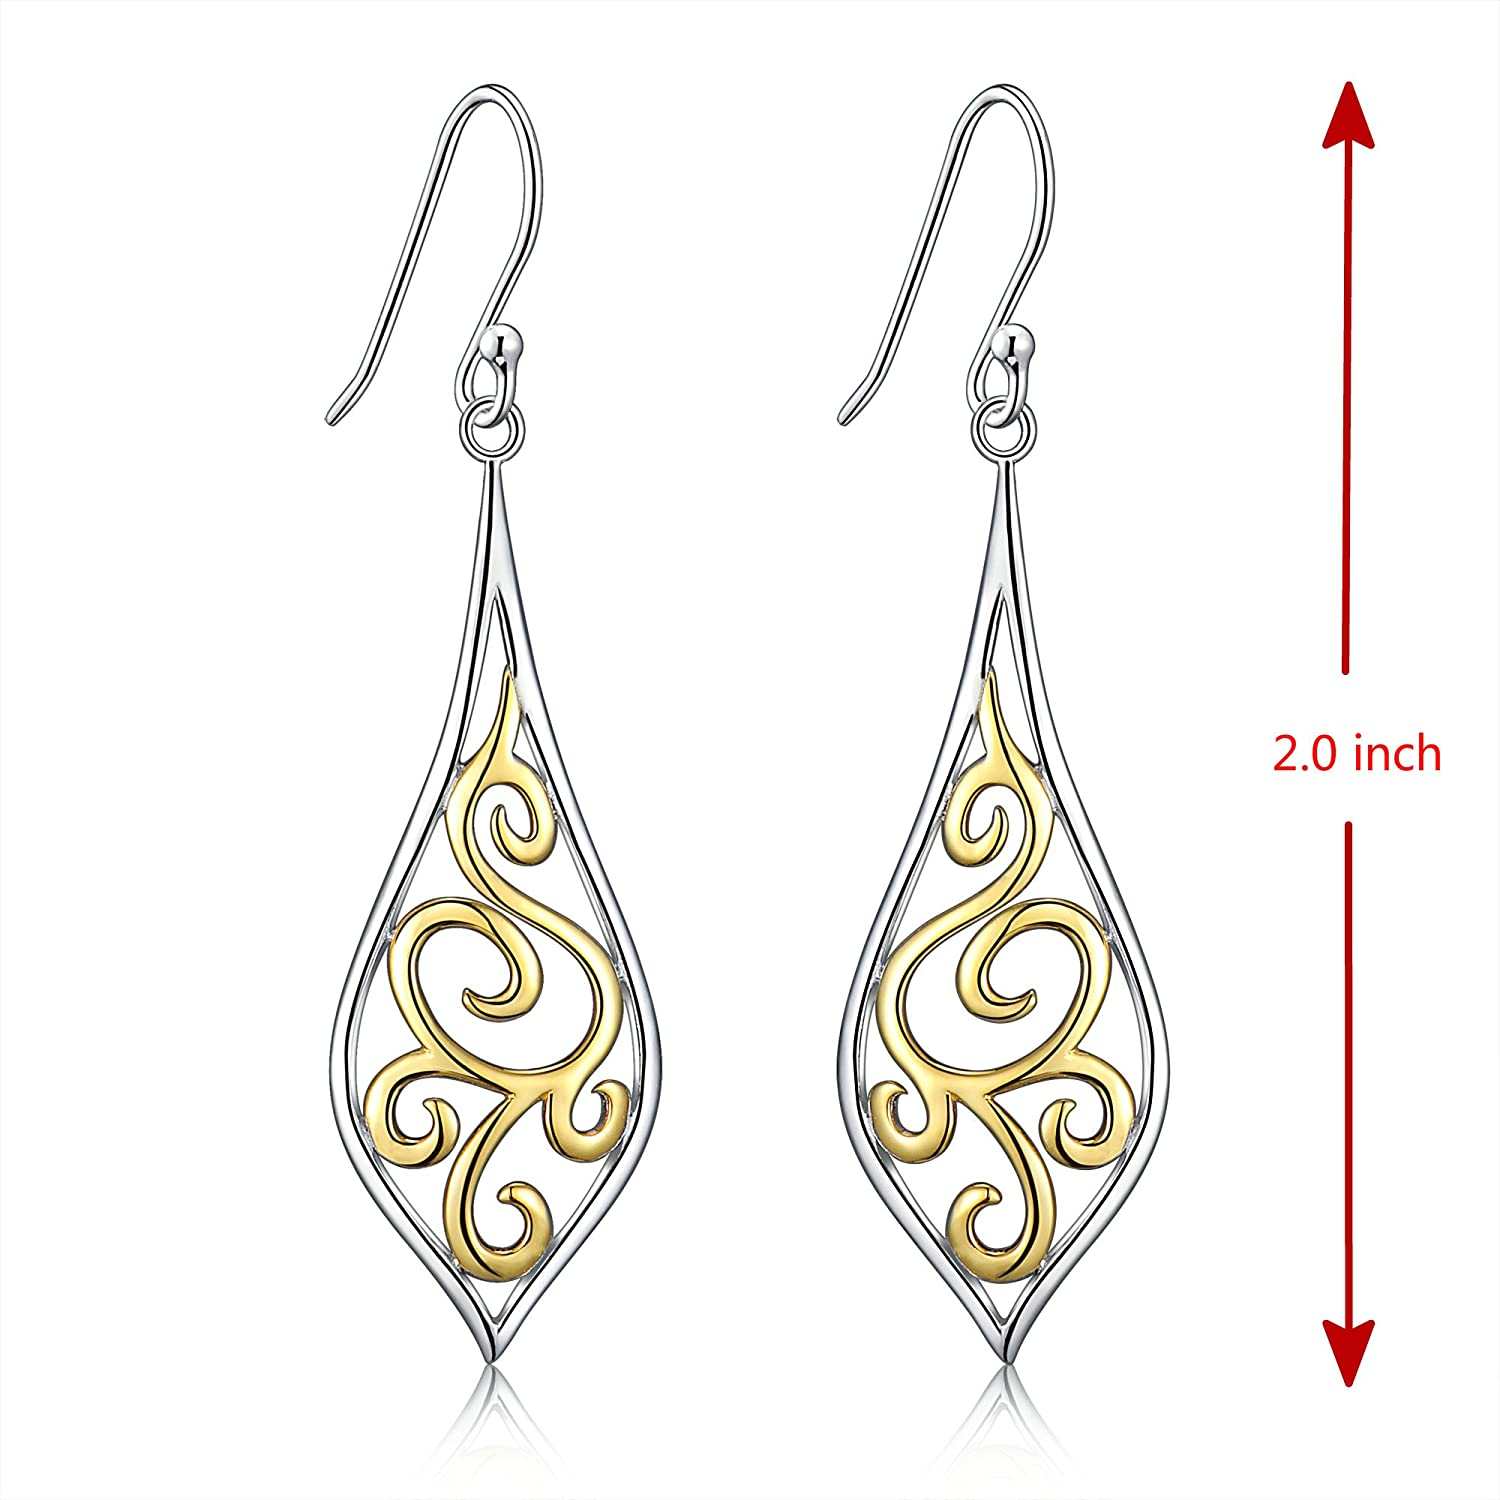 685431466bbd7 18K Gold Plated Sterling Silver Filigree Leaf Design Dangle Drop Earrings  For Sensitive Ears By Renaissance Jewelry